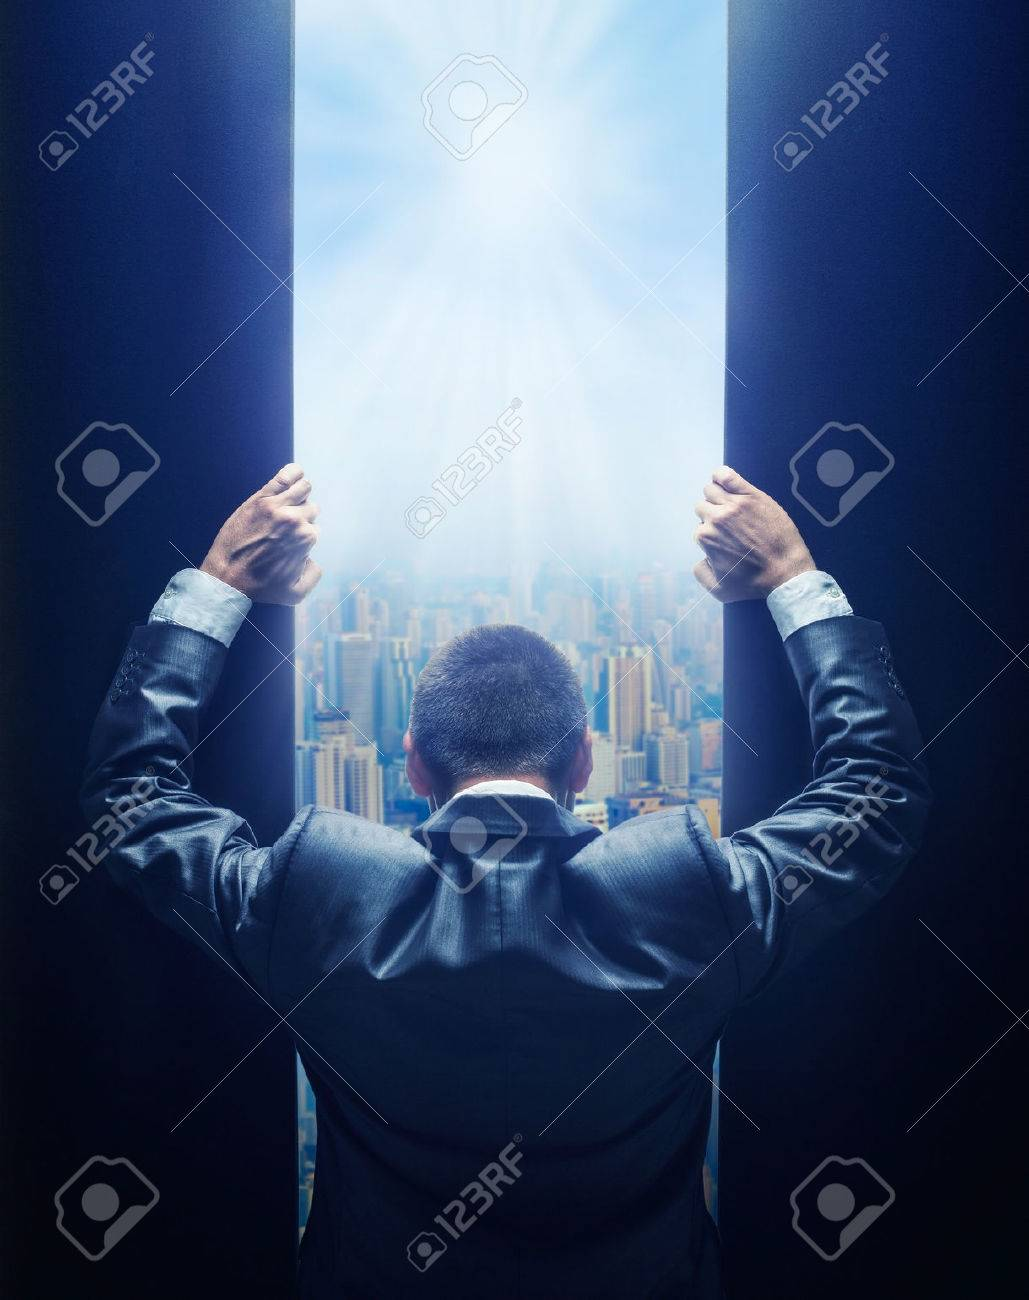 Businessman opening the gate to the city - 50840612